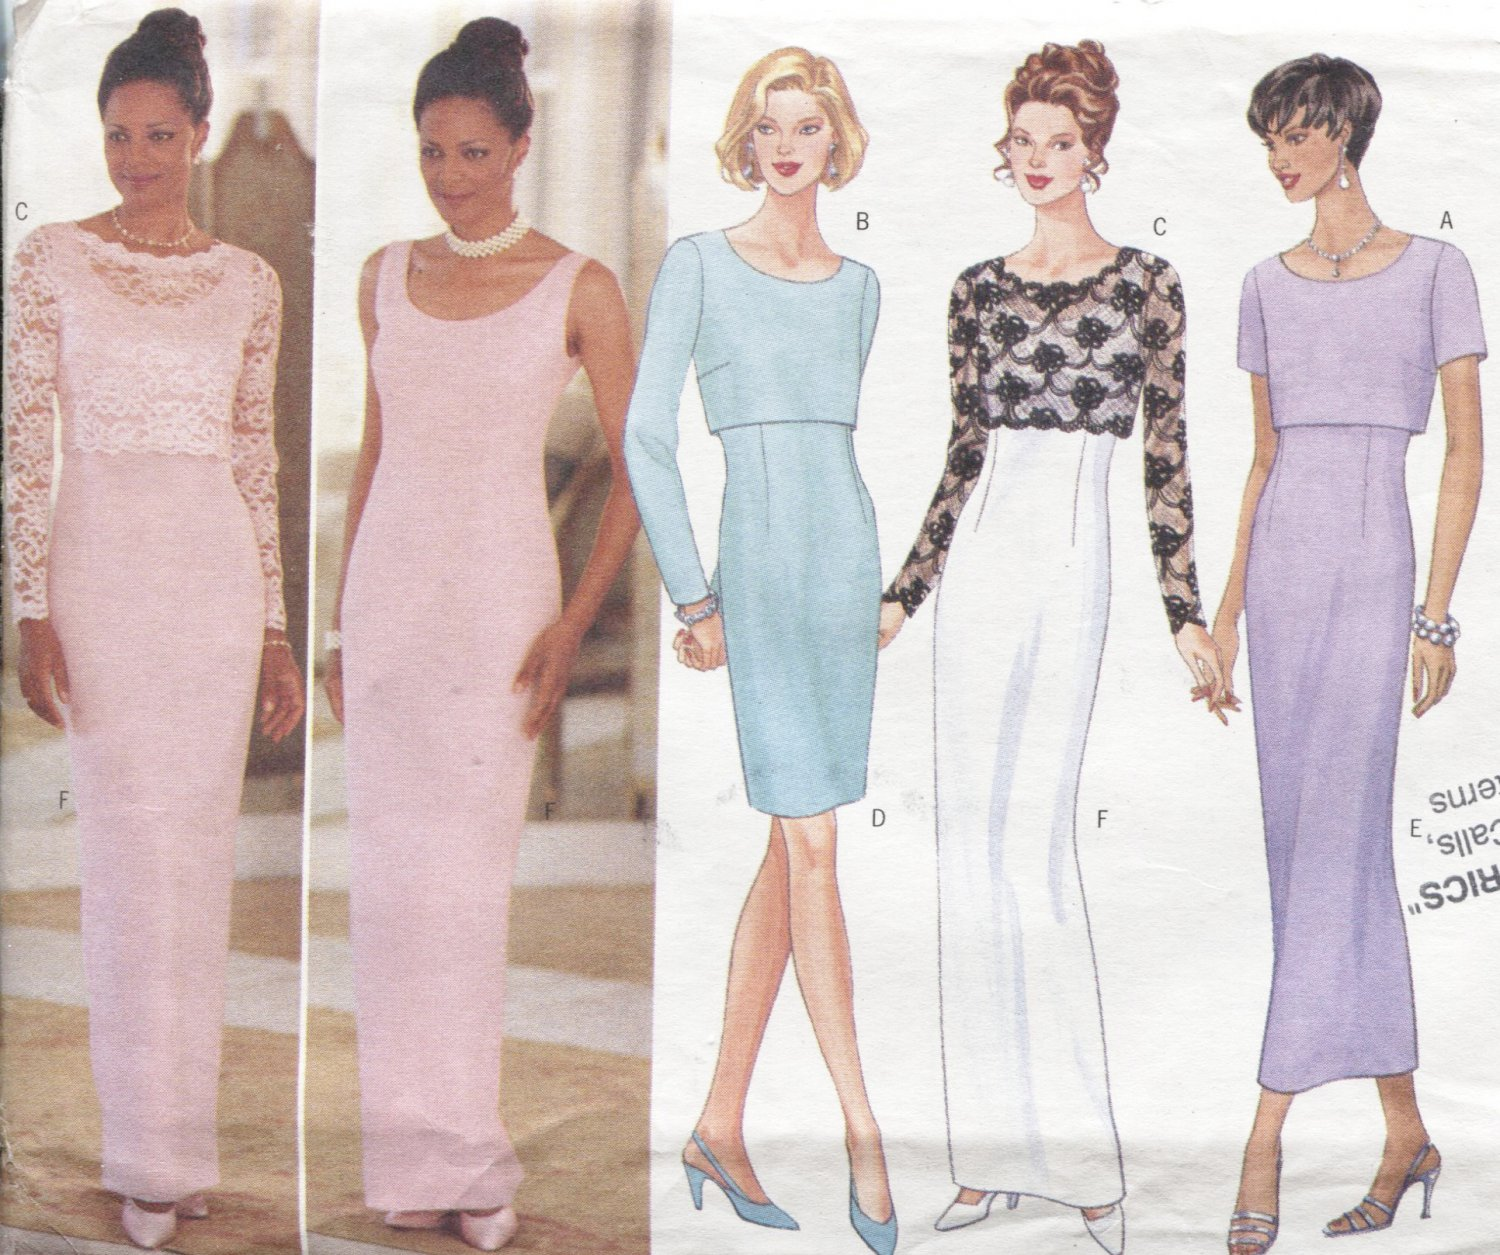 Butterick Pattern 4782 Classic Style Size 12-14-16 Misses Top and Dress 1996